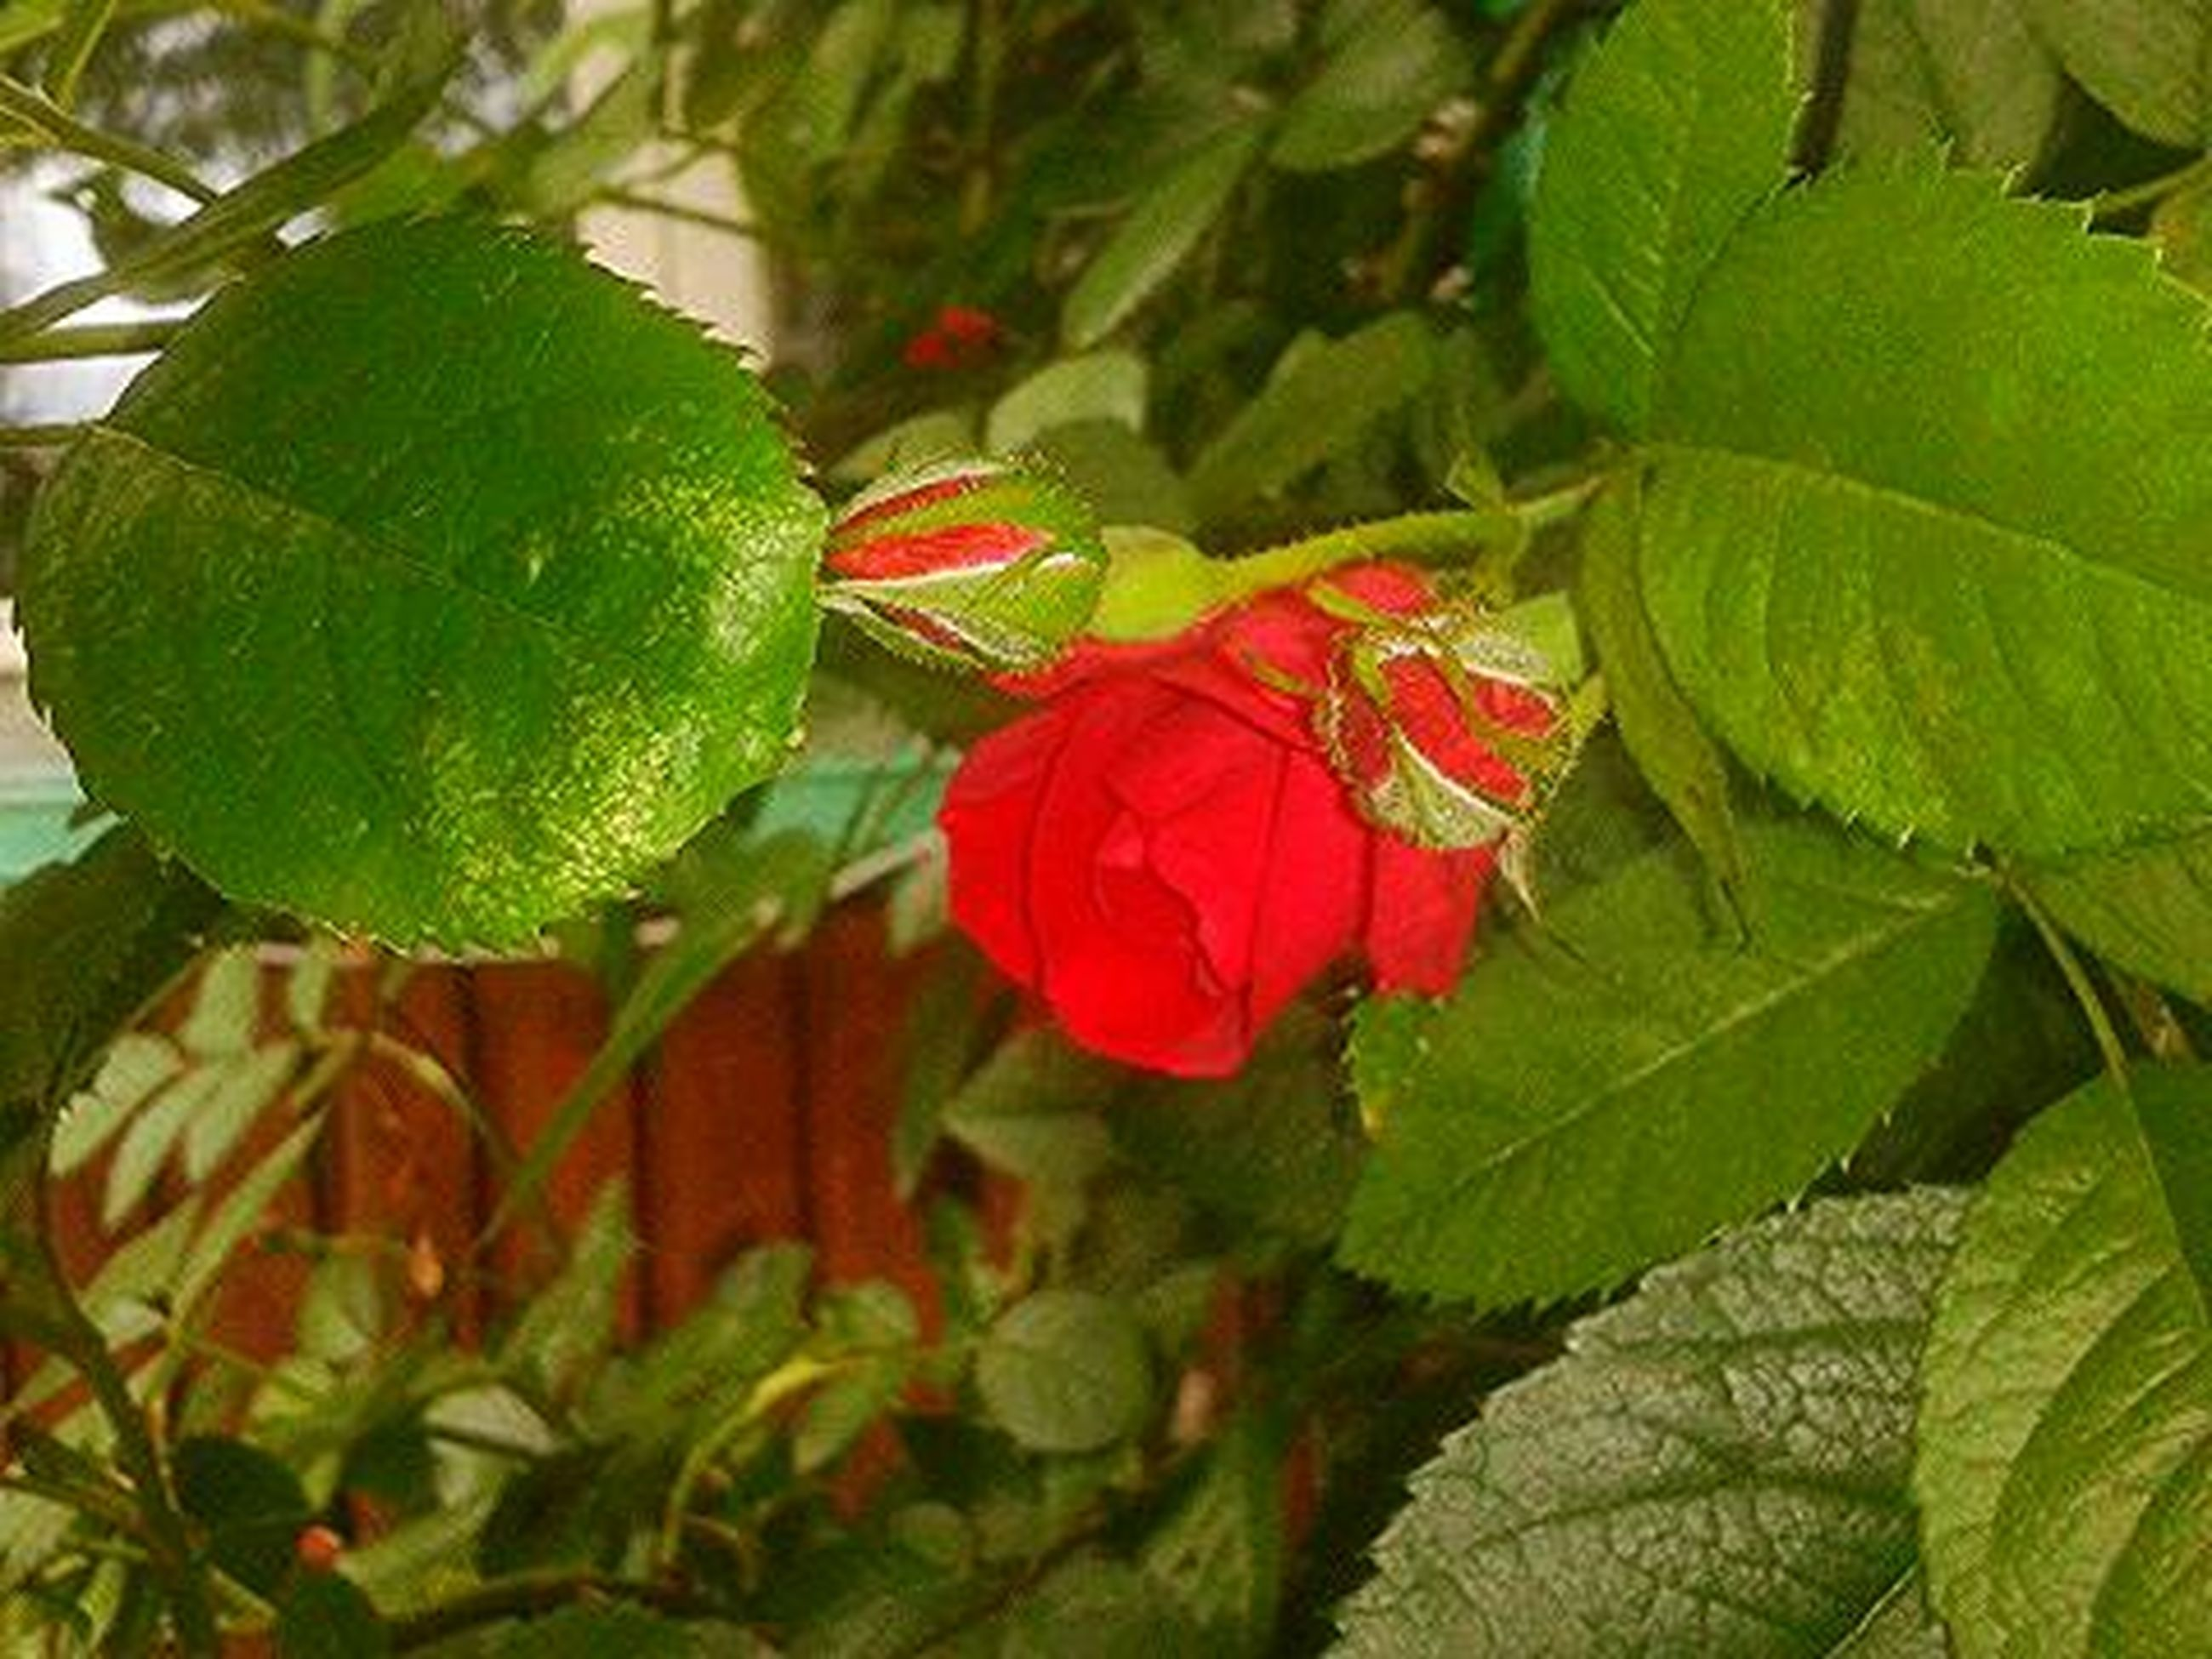 leaf, growth, freshness, green color, flower, beauty in nature, plant, close-up, nature, fragility, red, focus on foreground, petal, leaf vein, day, flower head, no people, outdoors, bud, botany